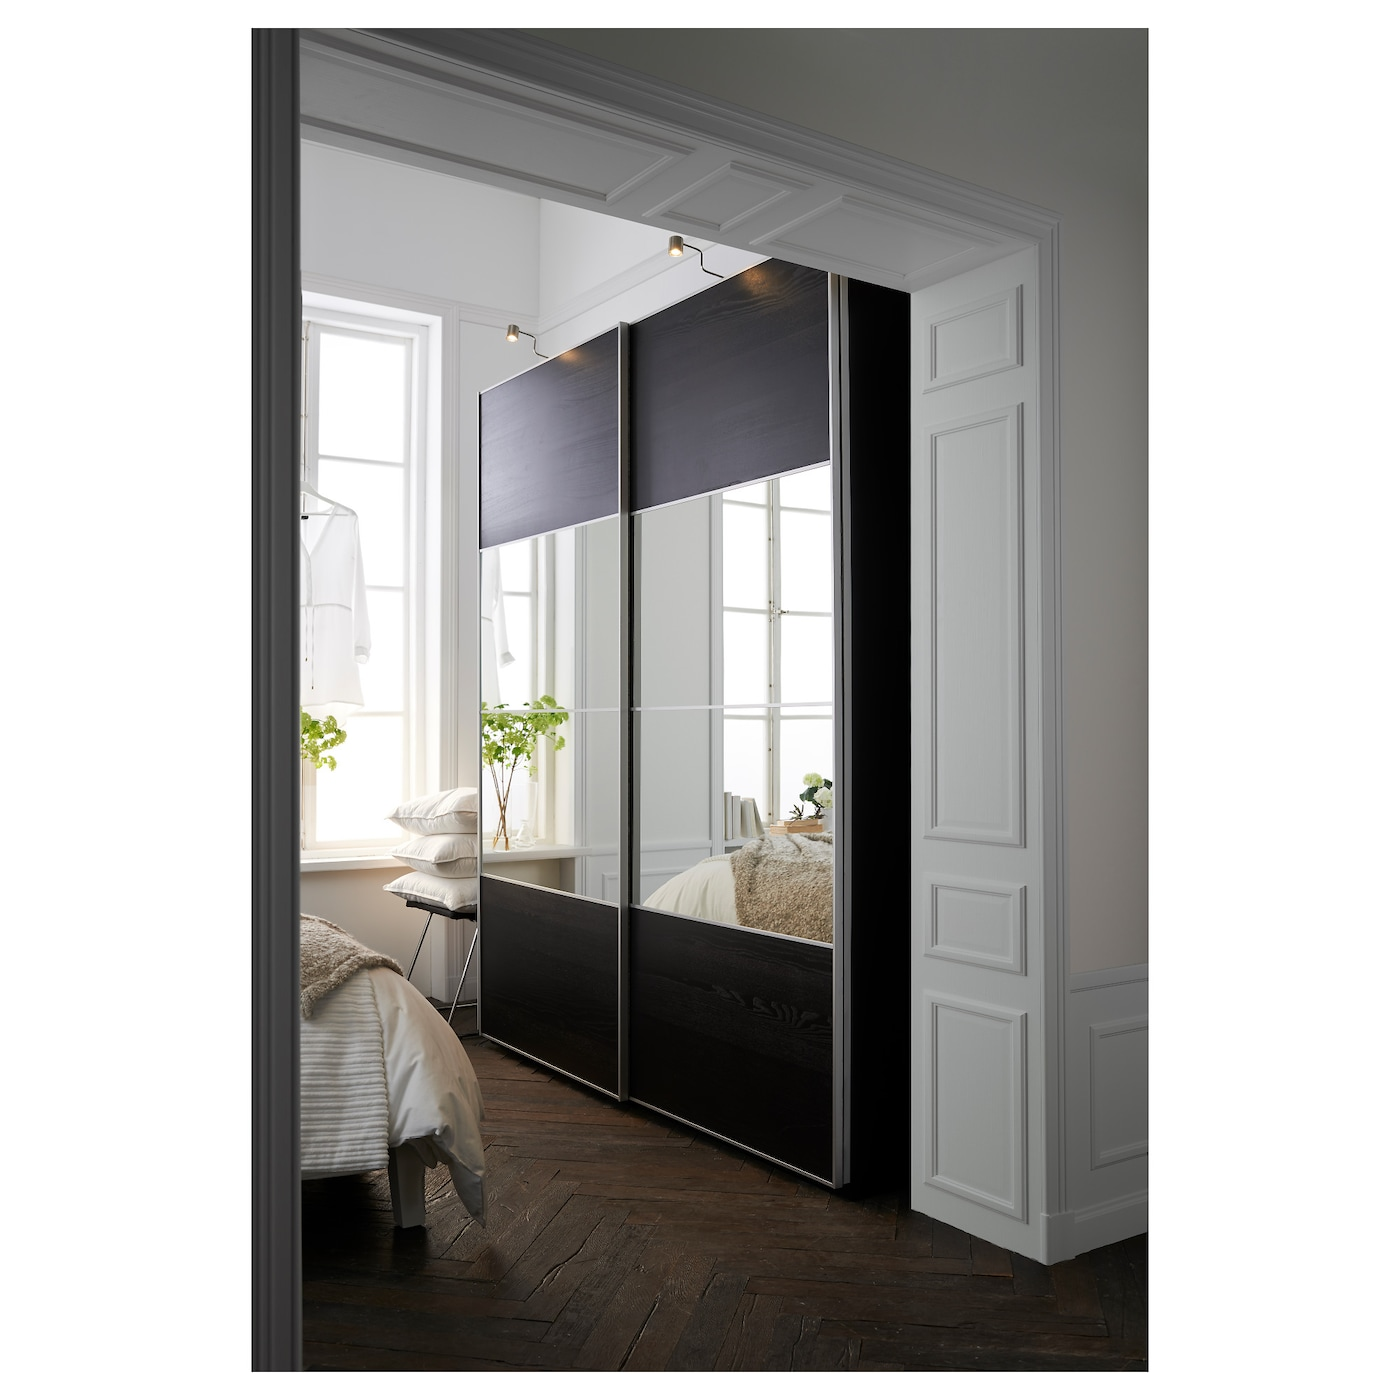 Pax wardrobe black brown auli ilseng 200x66x236 cm ikea for Armoire penderie avec portes coulissantes